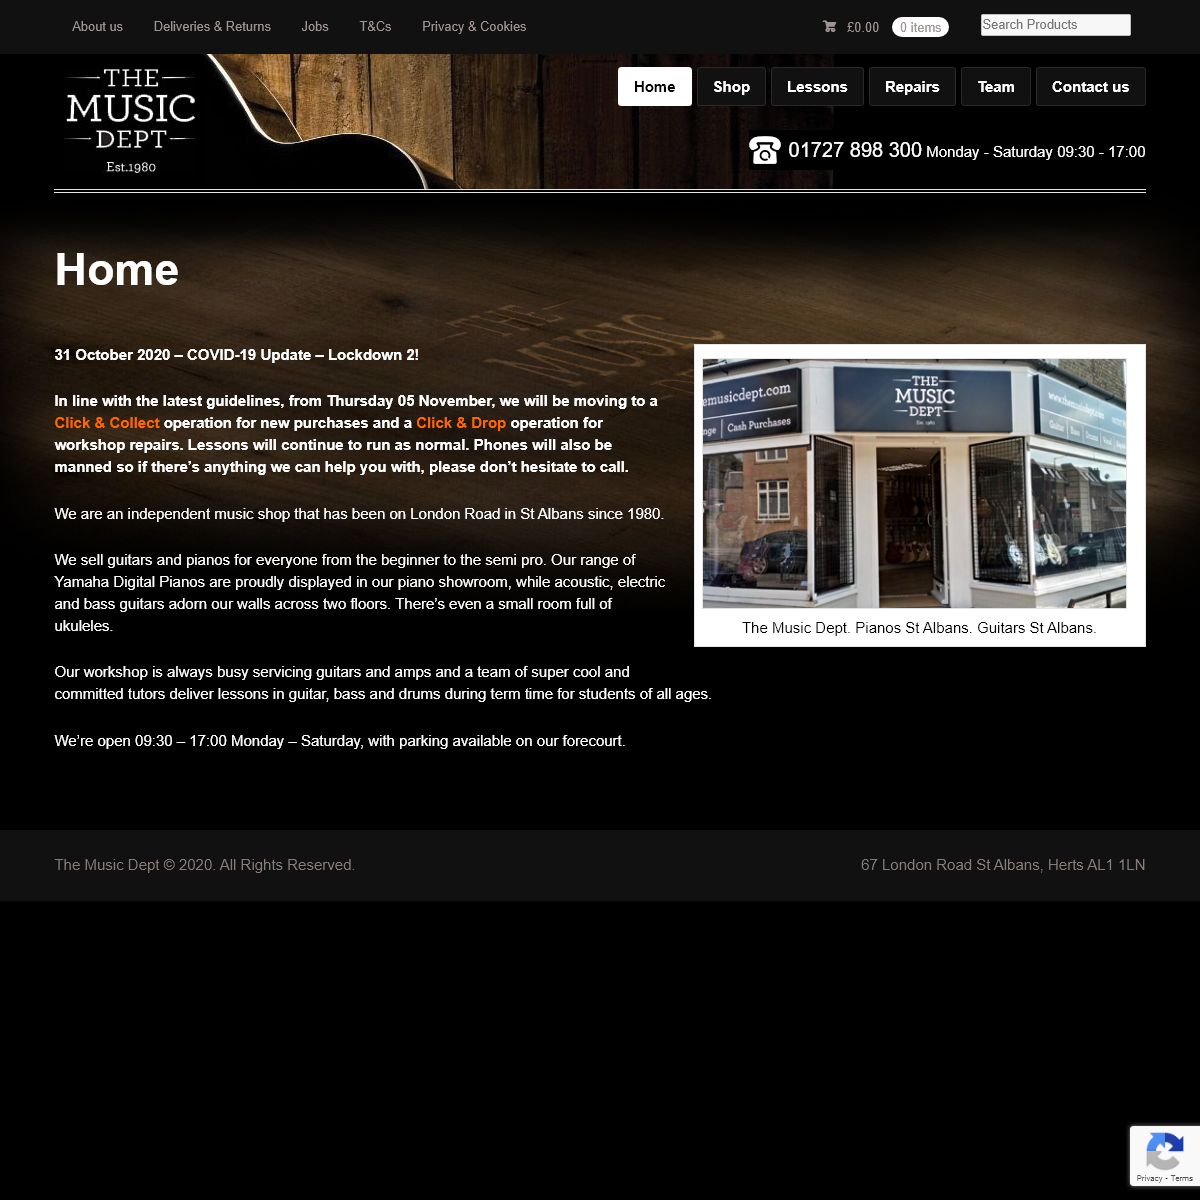 Guitar, Amp and Piano - The Music Dept, 67 London Road, St Albans AL1 1LN